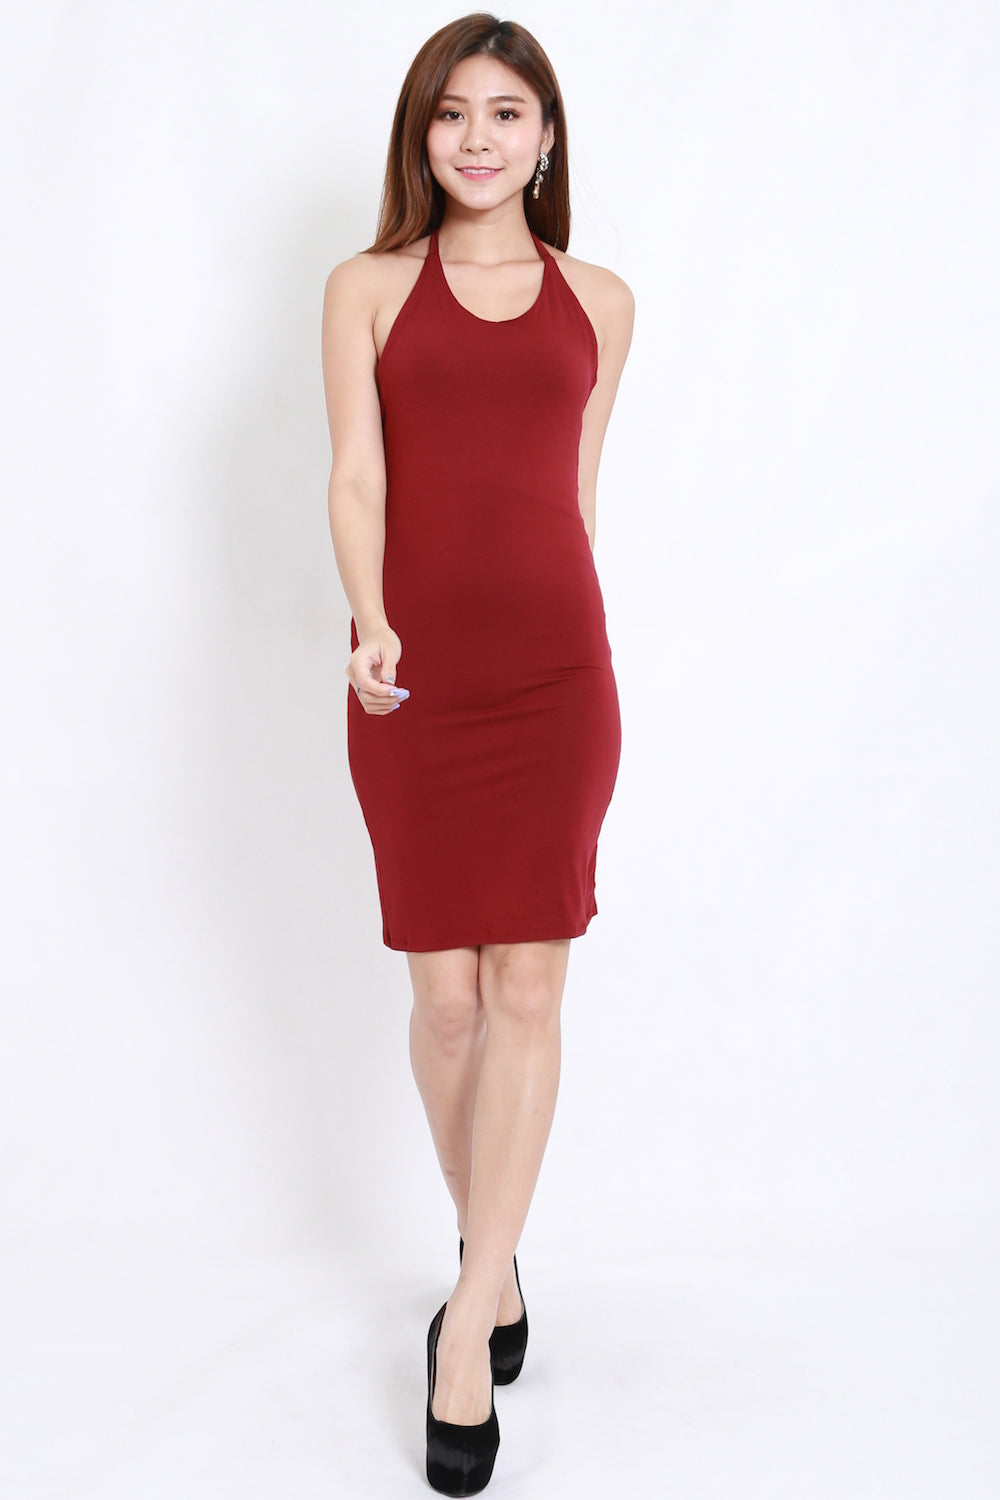 db50a147c6f5 Halter Midi Dress (Maroon) – Carrislabelle